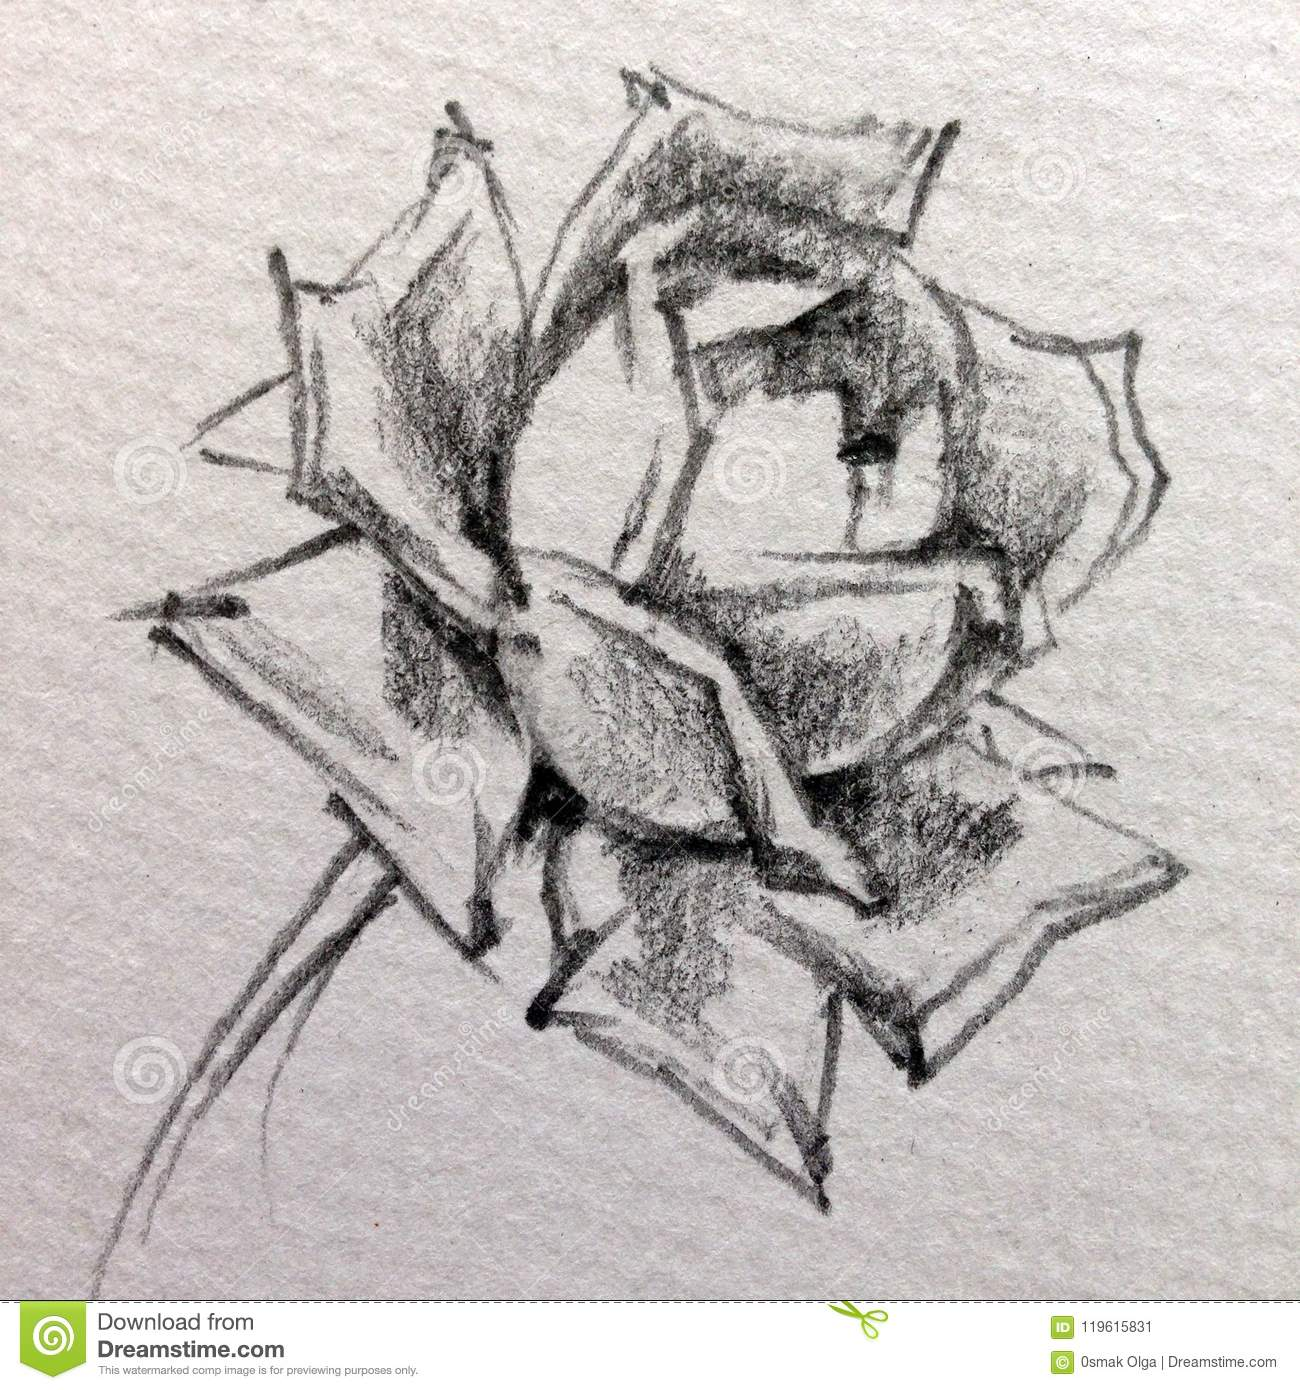 Pencil drawing textured abstract background handmade floral